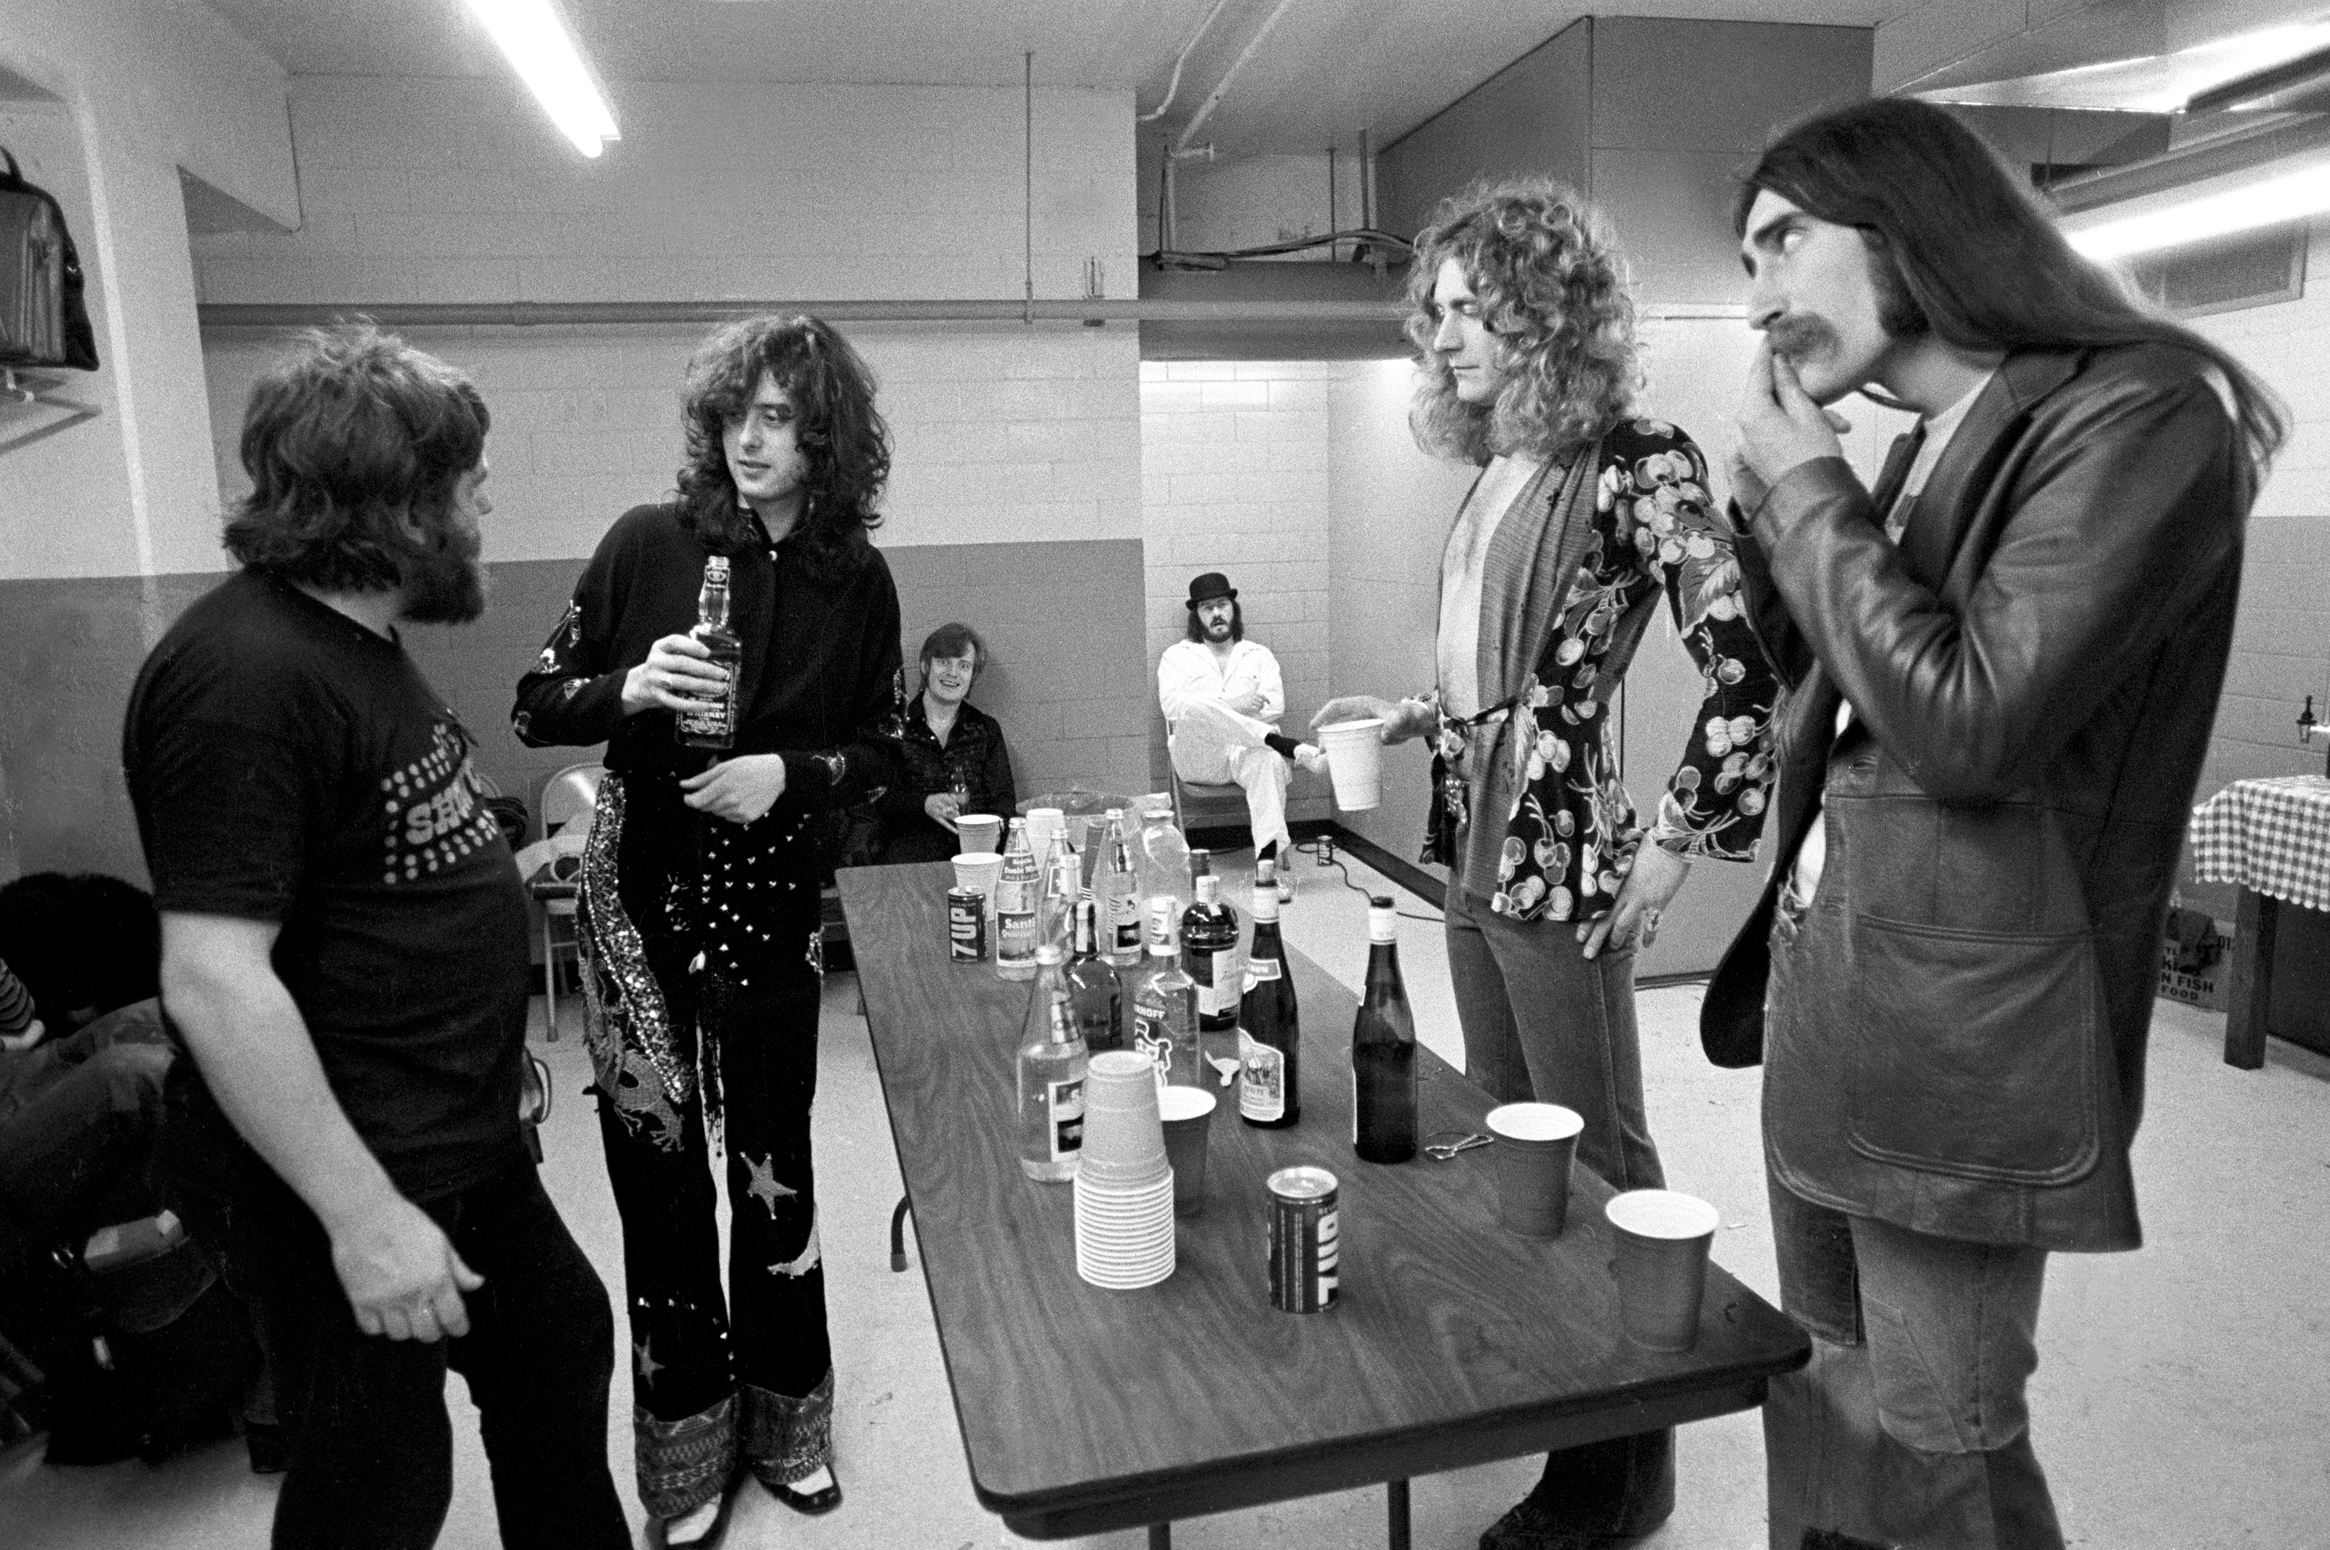 Lawyer: Led Zeppelin Just 'Session Musicians Playing Other